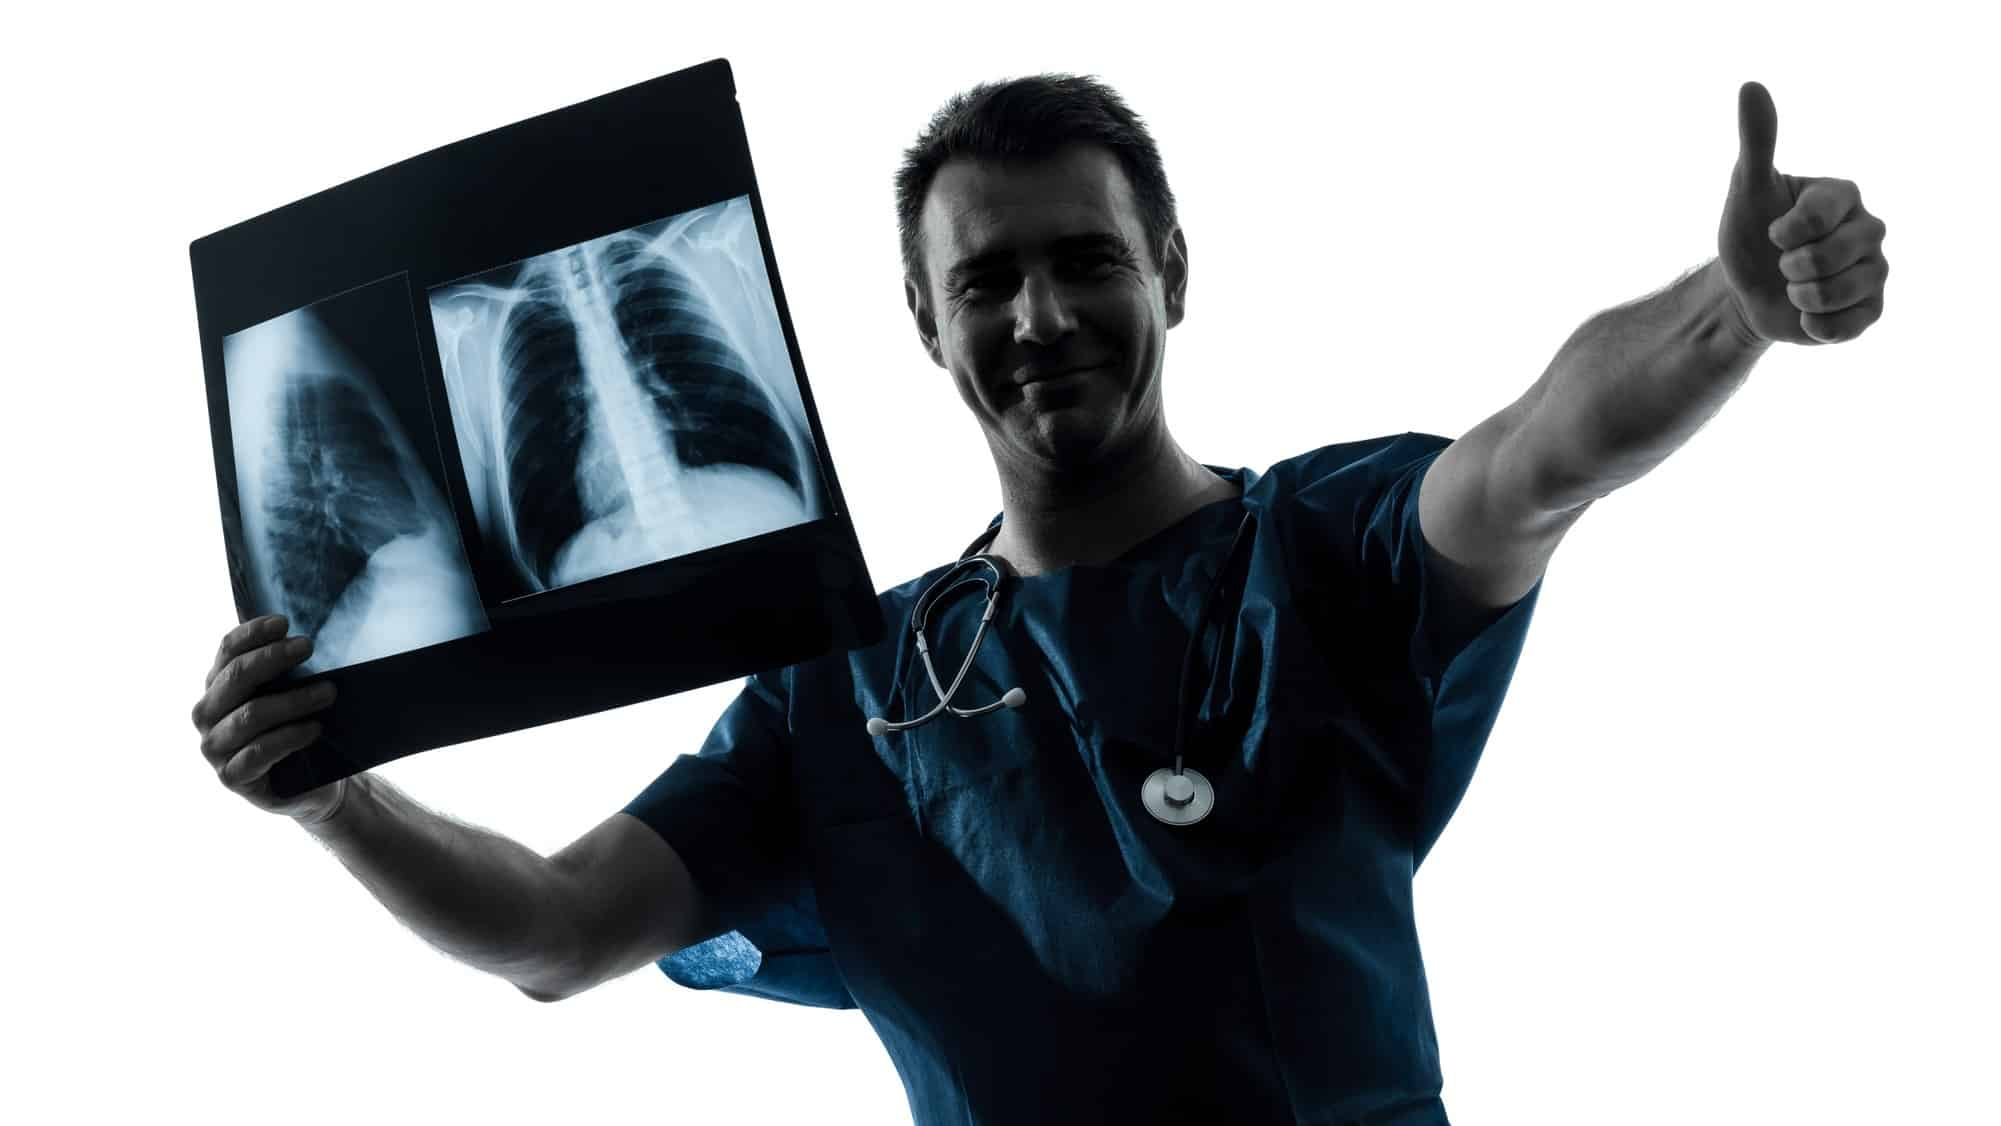 A medical specialist holding a chest an xray or scan and giving a thumbs up, indicating good results for asx healthcare share price